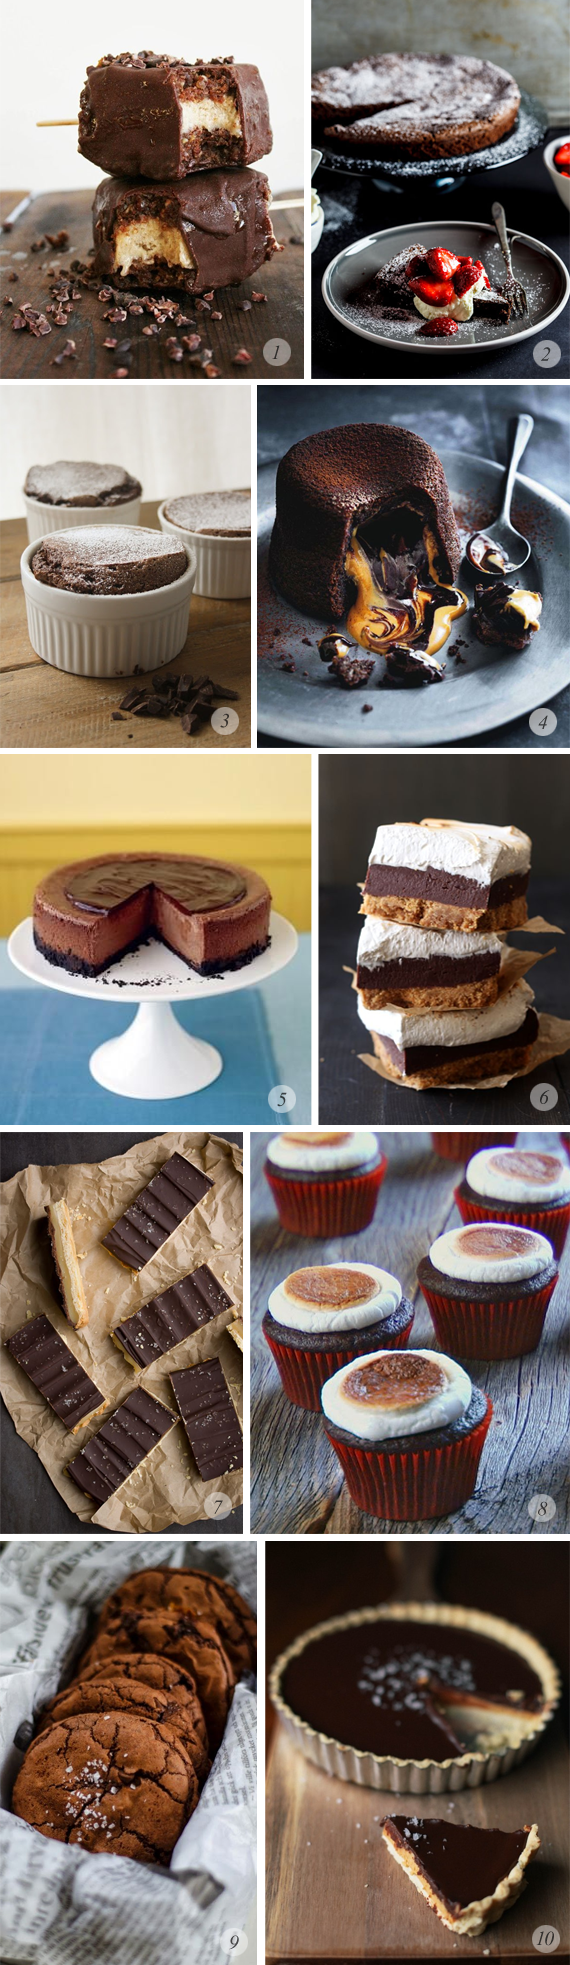 10 Great Chocolate Dessert Recipes // Bubby and Bean